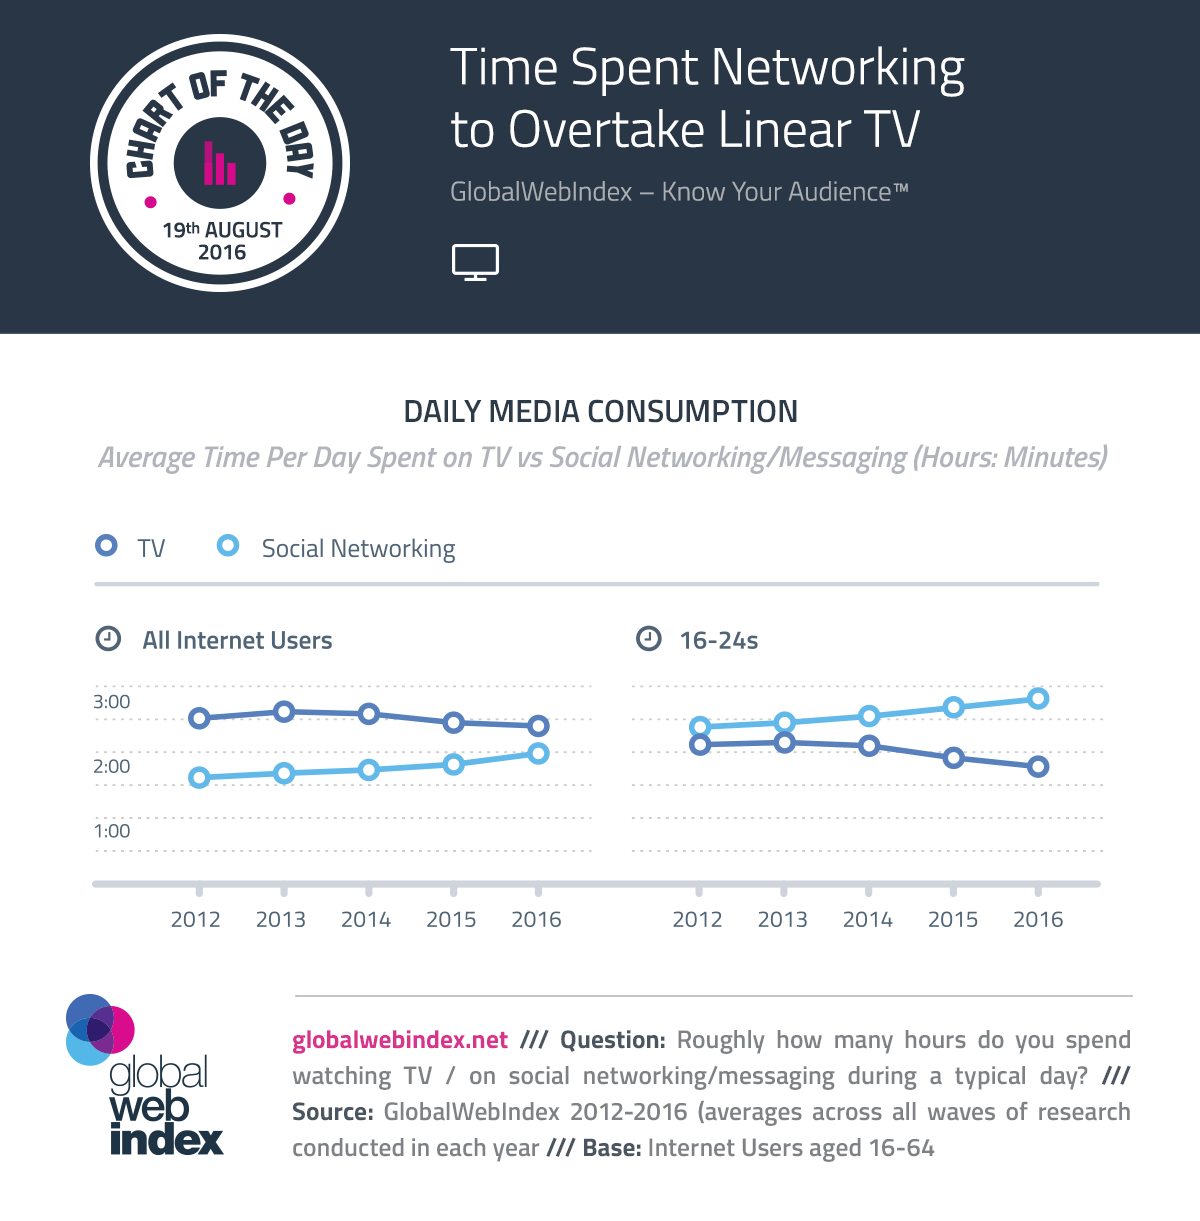 Time Spent Networking to Overtake Linear TV